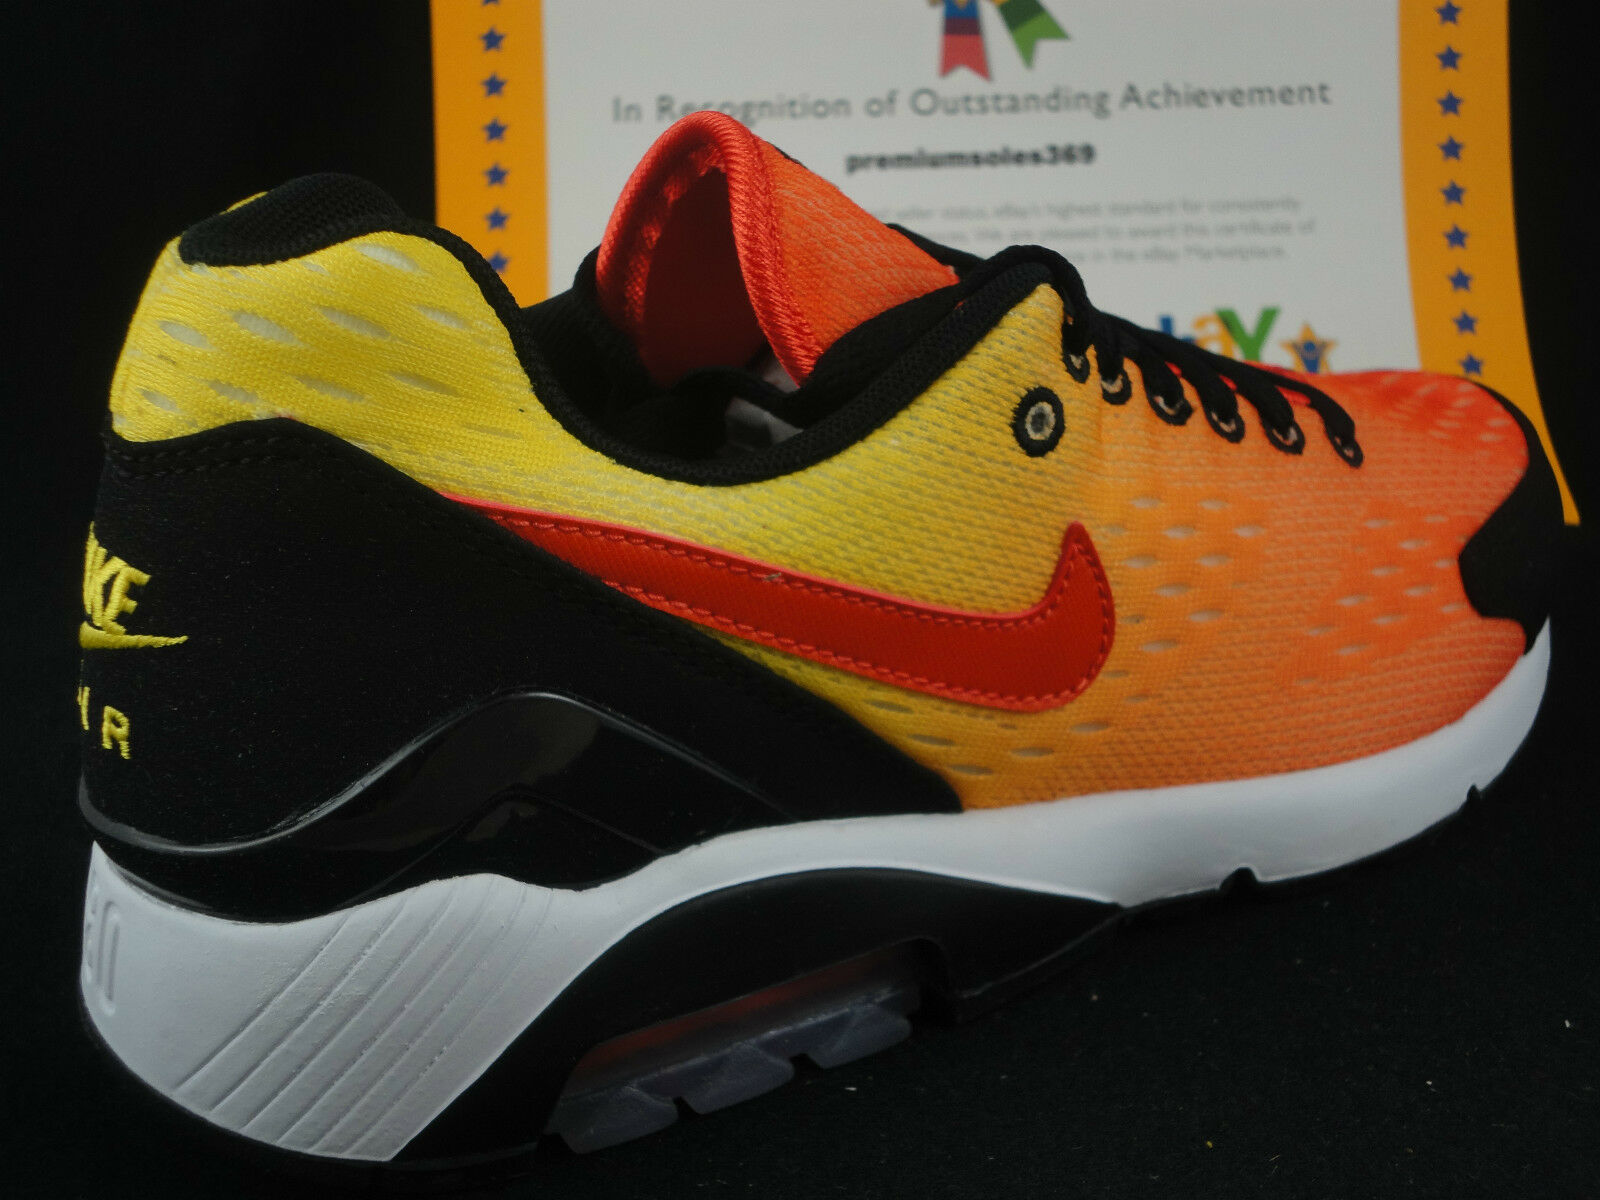 Nike Air Max 180 EM, Size 10.5, Sunset Pack, Engineered Mesh